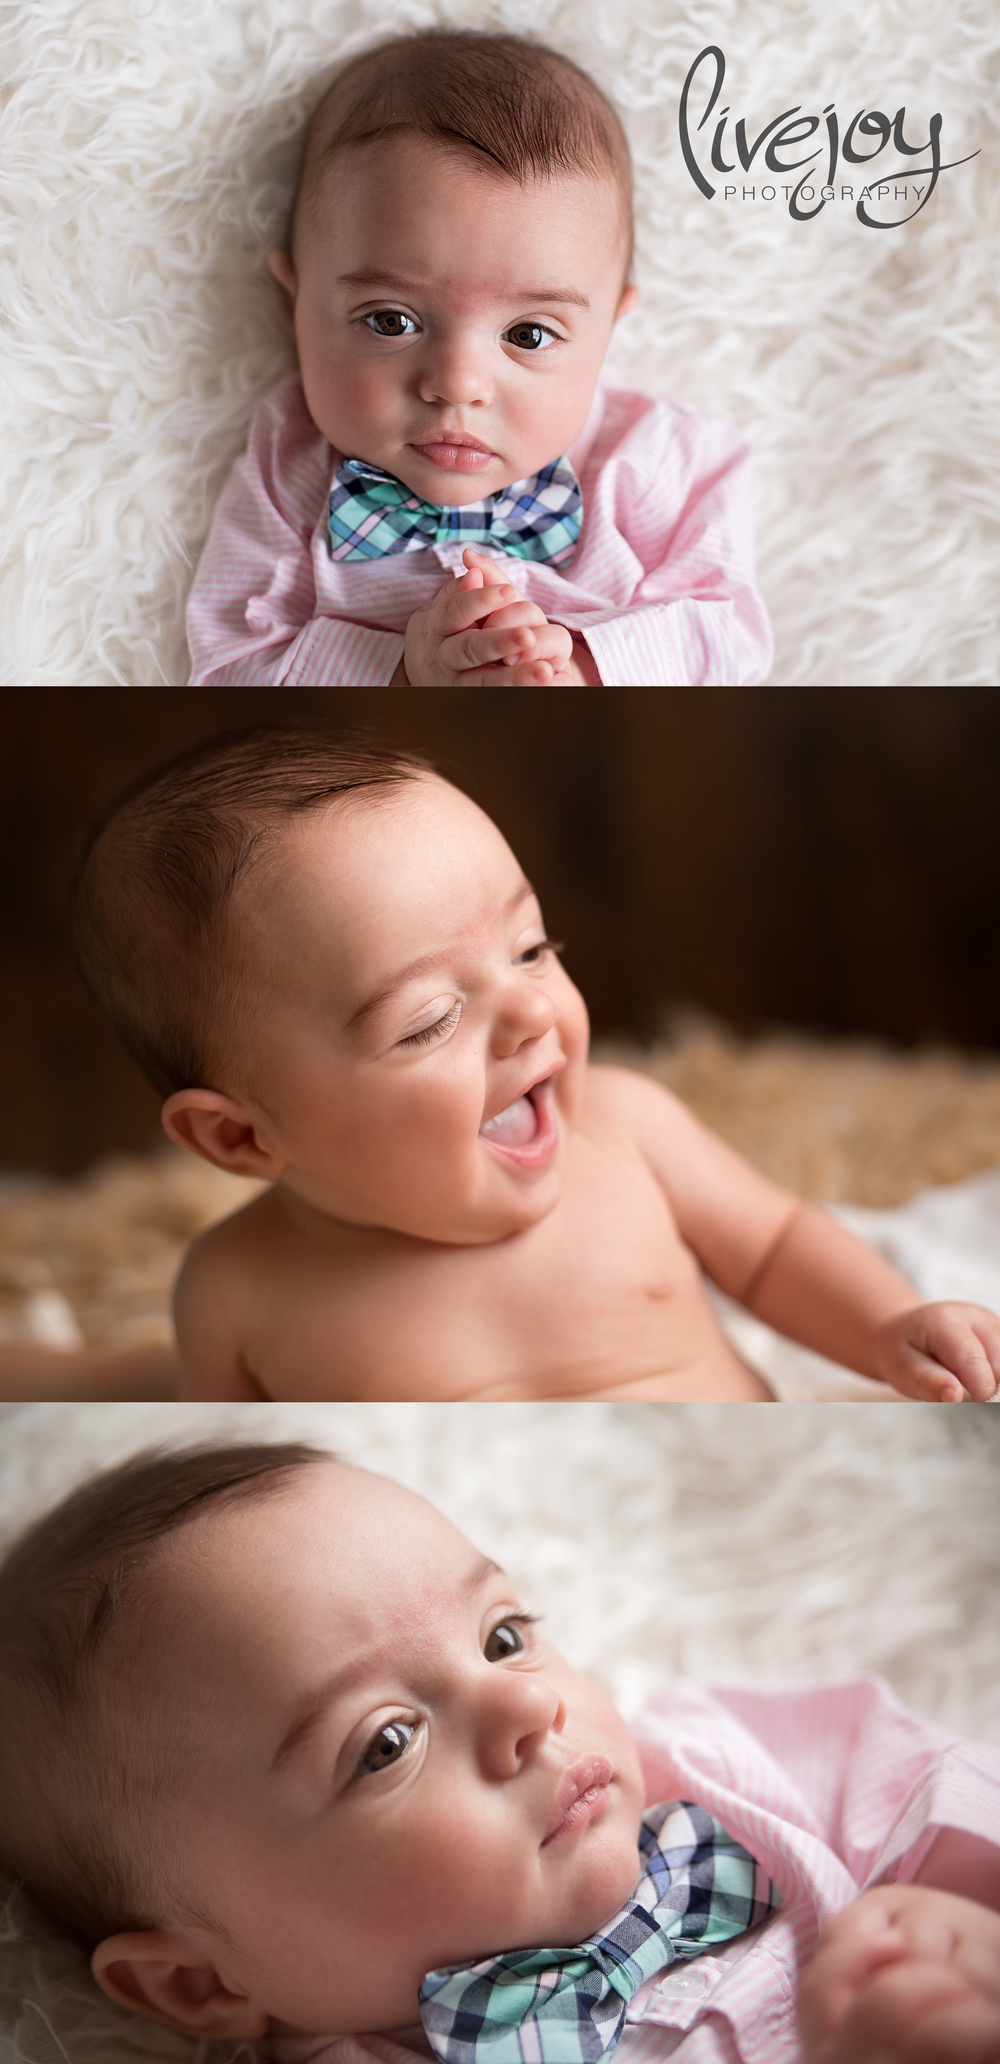 6 Months Baby Photos | Oregon | LiveJoy Photography